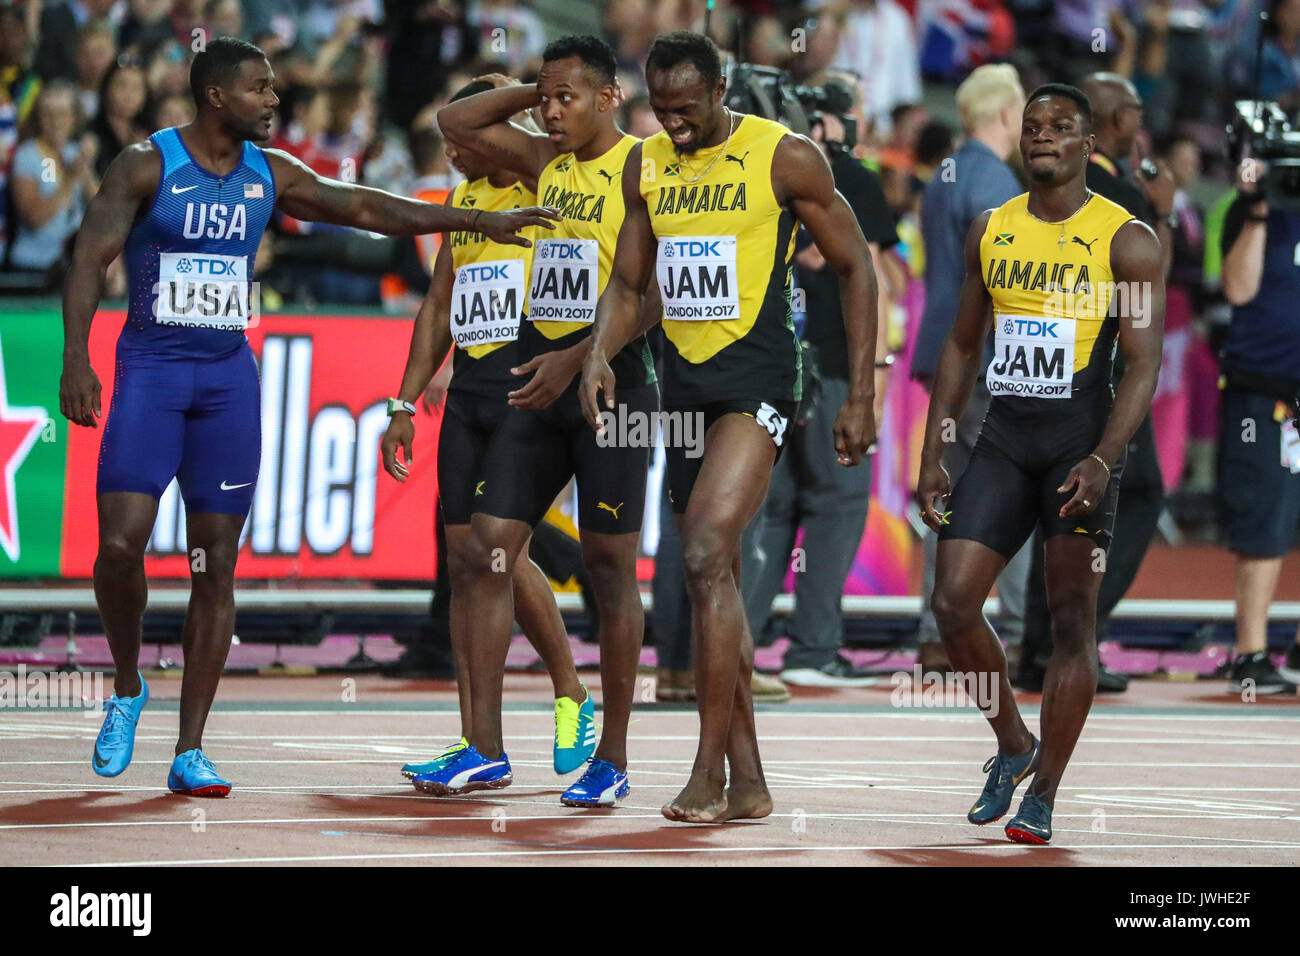 London, UK. 12th Aug, 2017. London, August 12 2017 . Justin Gatlin wishes Usain Bolt well after he pulled up injured as he ran the final 100m in the men's 4x 100m relay on day nine of the IAAF London 2017 world Championships at the London Stadium. Credit: Paul Davey/Alamy Live News - Stock Image